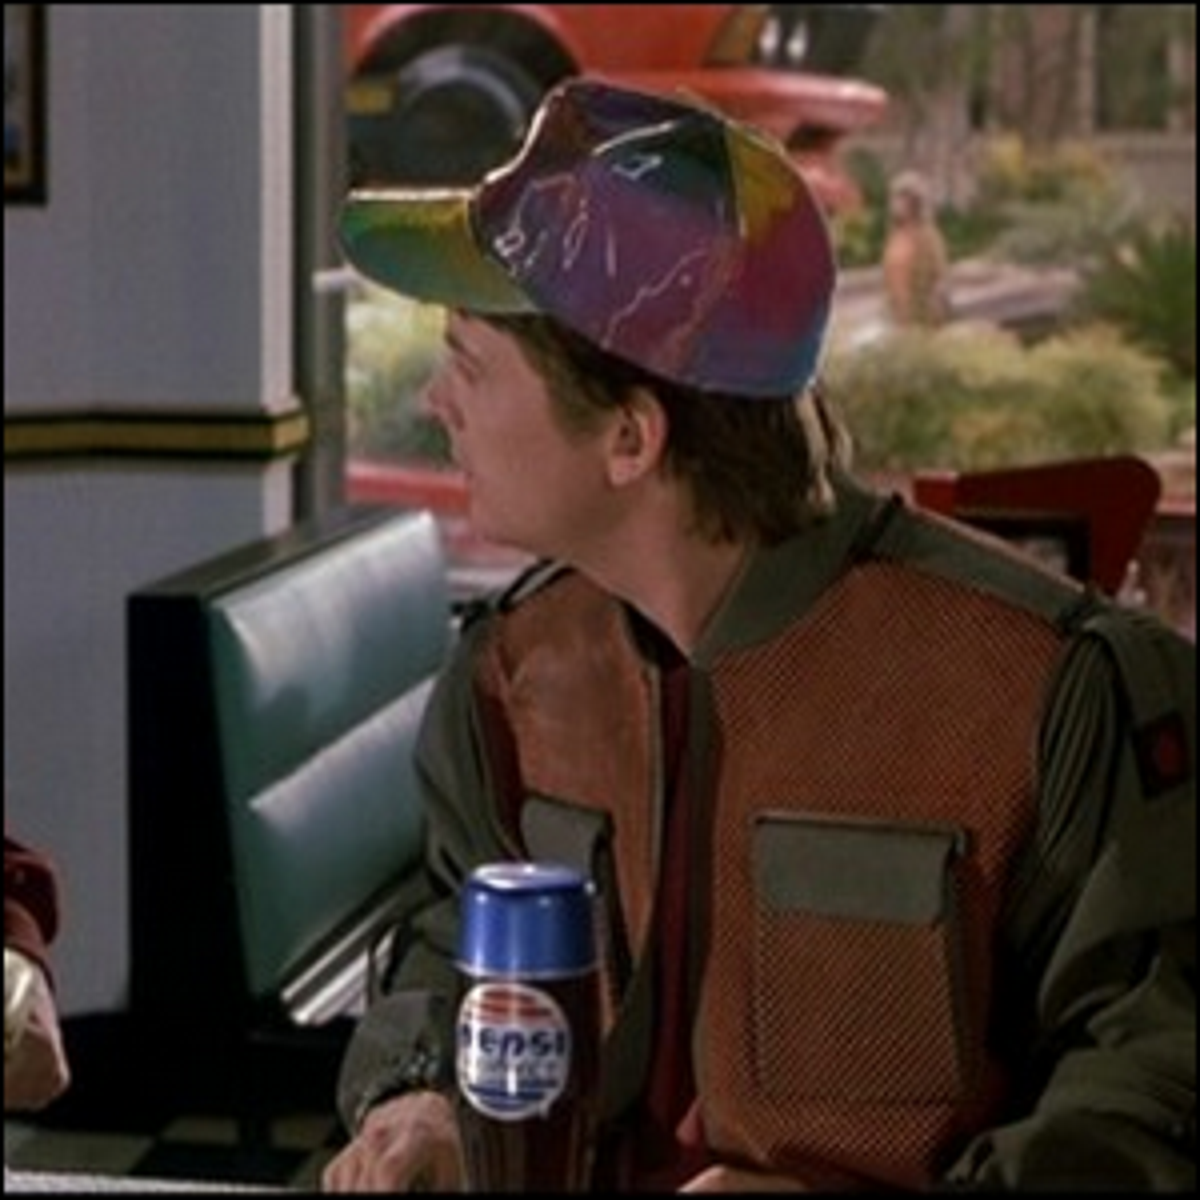 Marty McFly with a Pepsi Perfect in the film Back to the Future Part II.